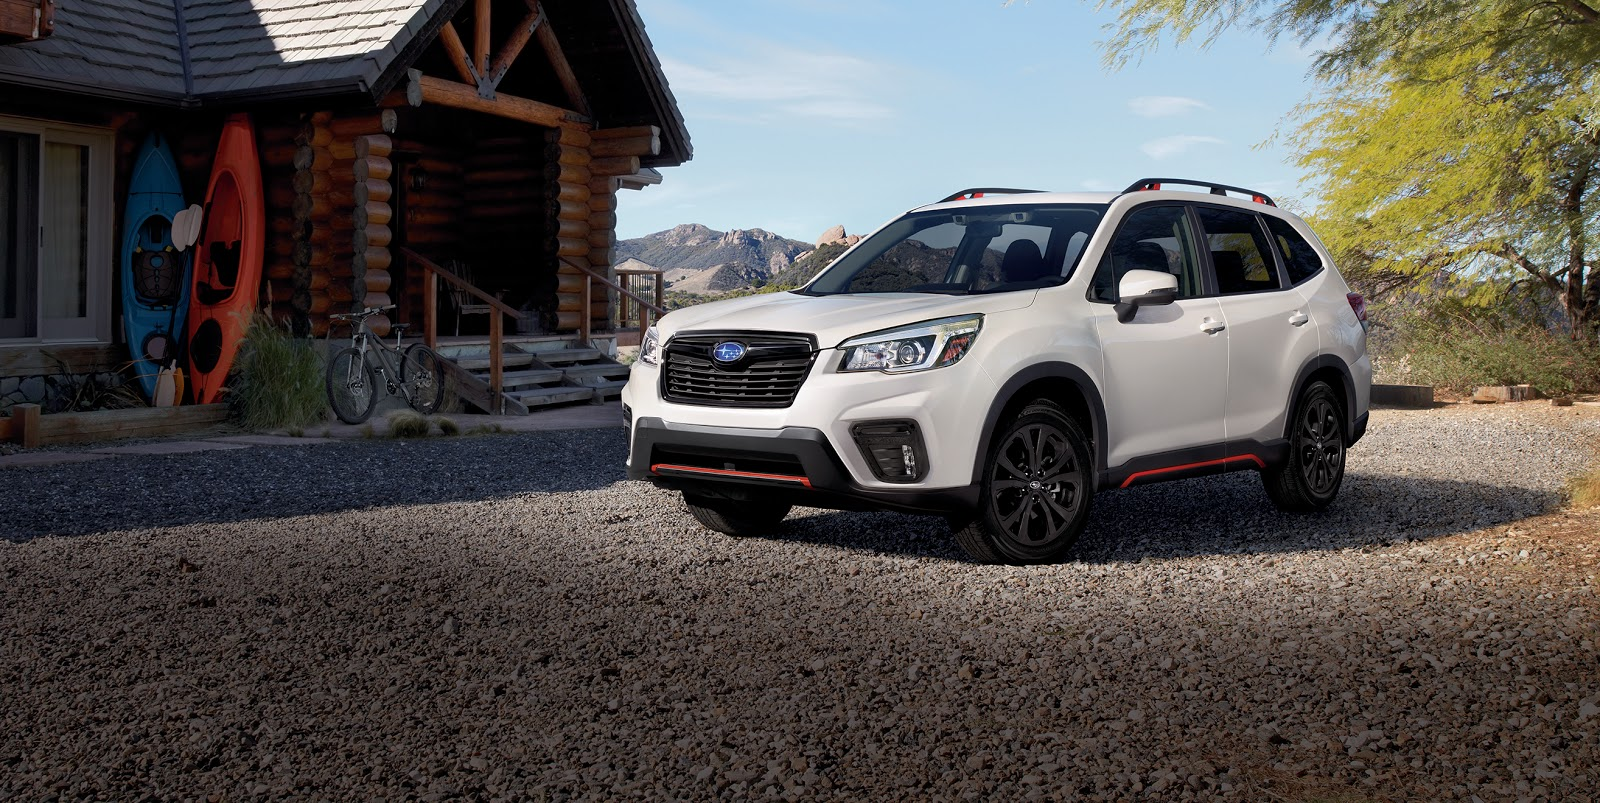 white subaru forester parked in front of a cabin